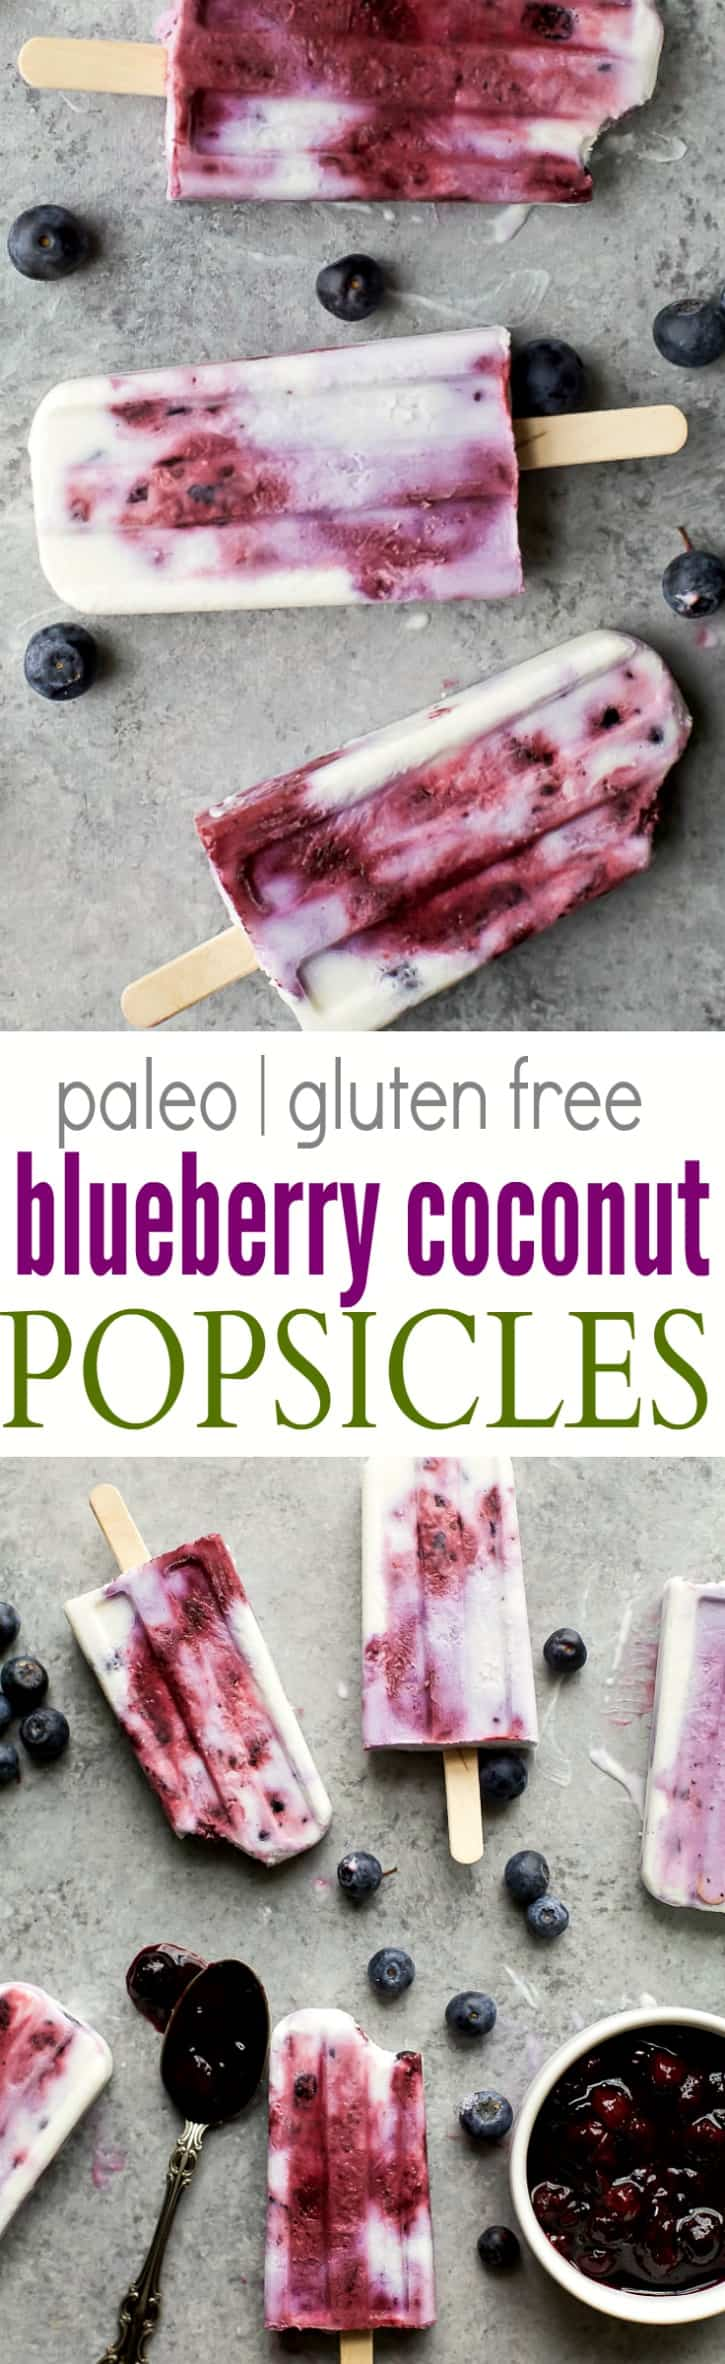 Your summer just got tastier with this creamy dreamy Paleo Blueberry Coconut Popsicles. Made from all fresh ingredients, no dairy, no refined sugar and 100% yum!